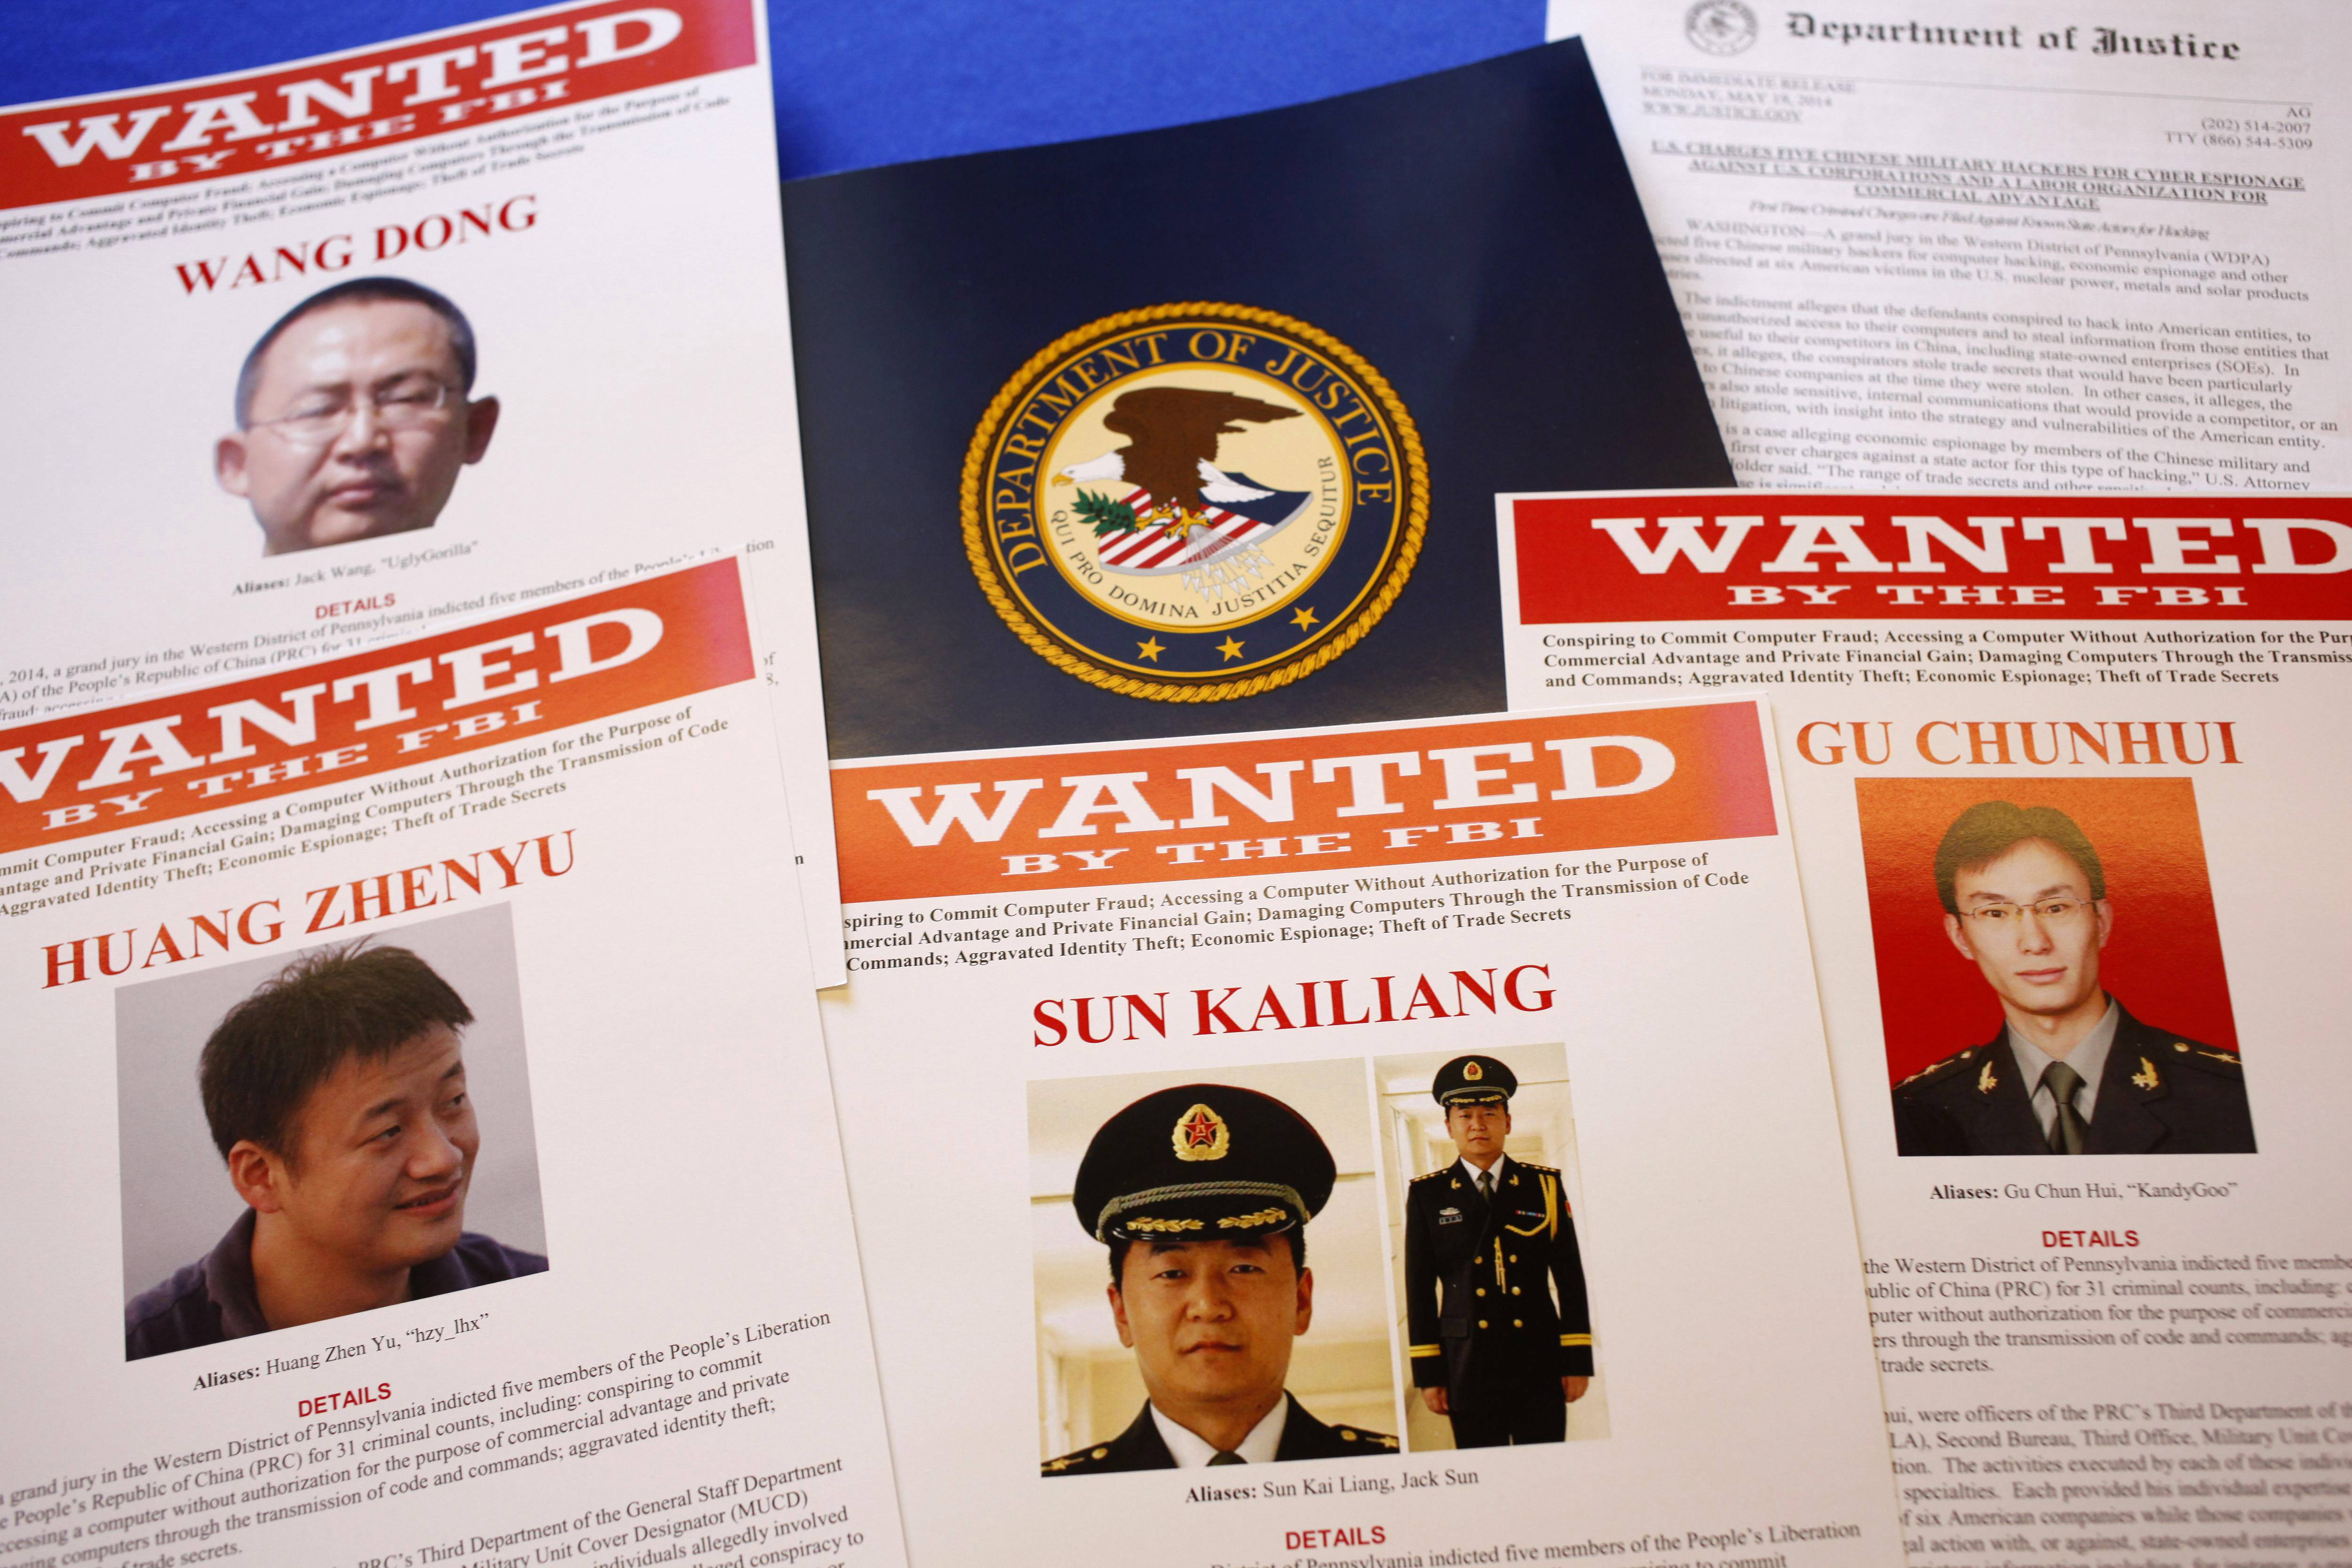 Press material displayed at the Justice Department in Washington before a press conference by U.S. Attorney General Eric Holder to announce charges of economic espionage and trade secret theft against five Chinese military officers, all hackers in an international cyber-espionage case.